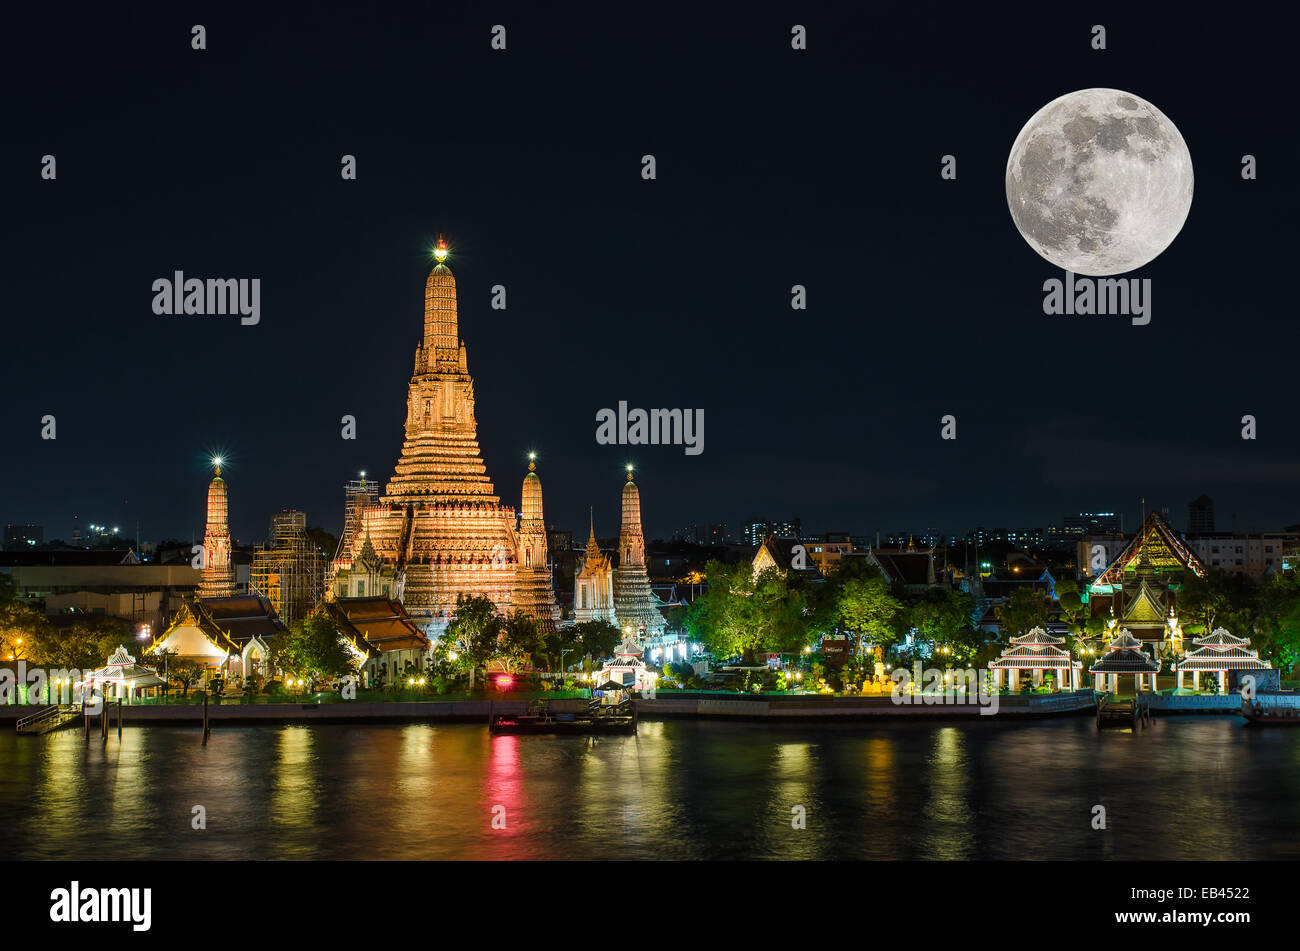 Wat arun in night with super full moon - Stock Image